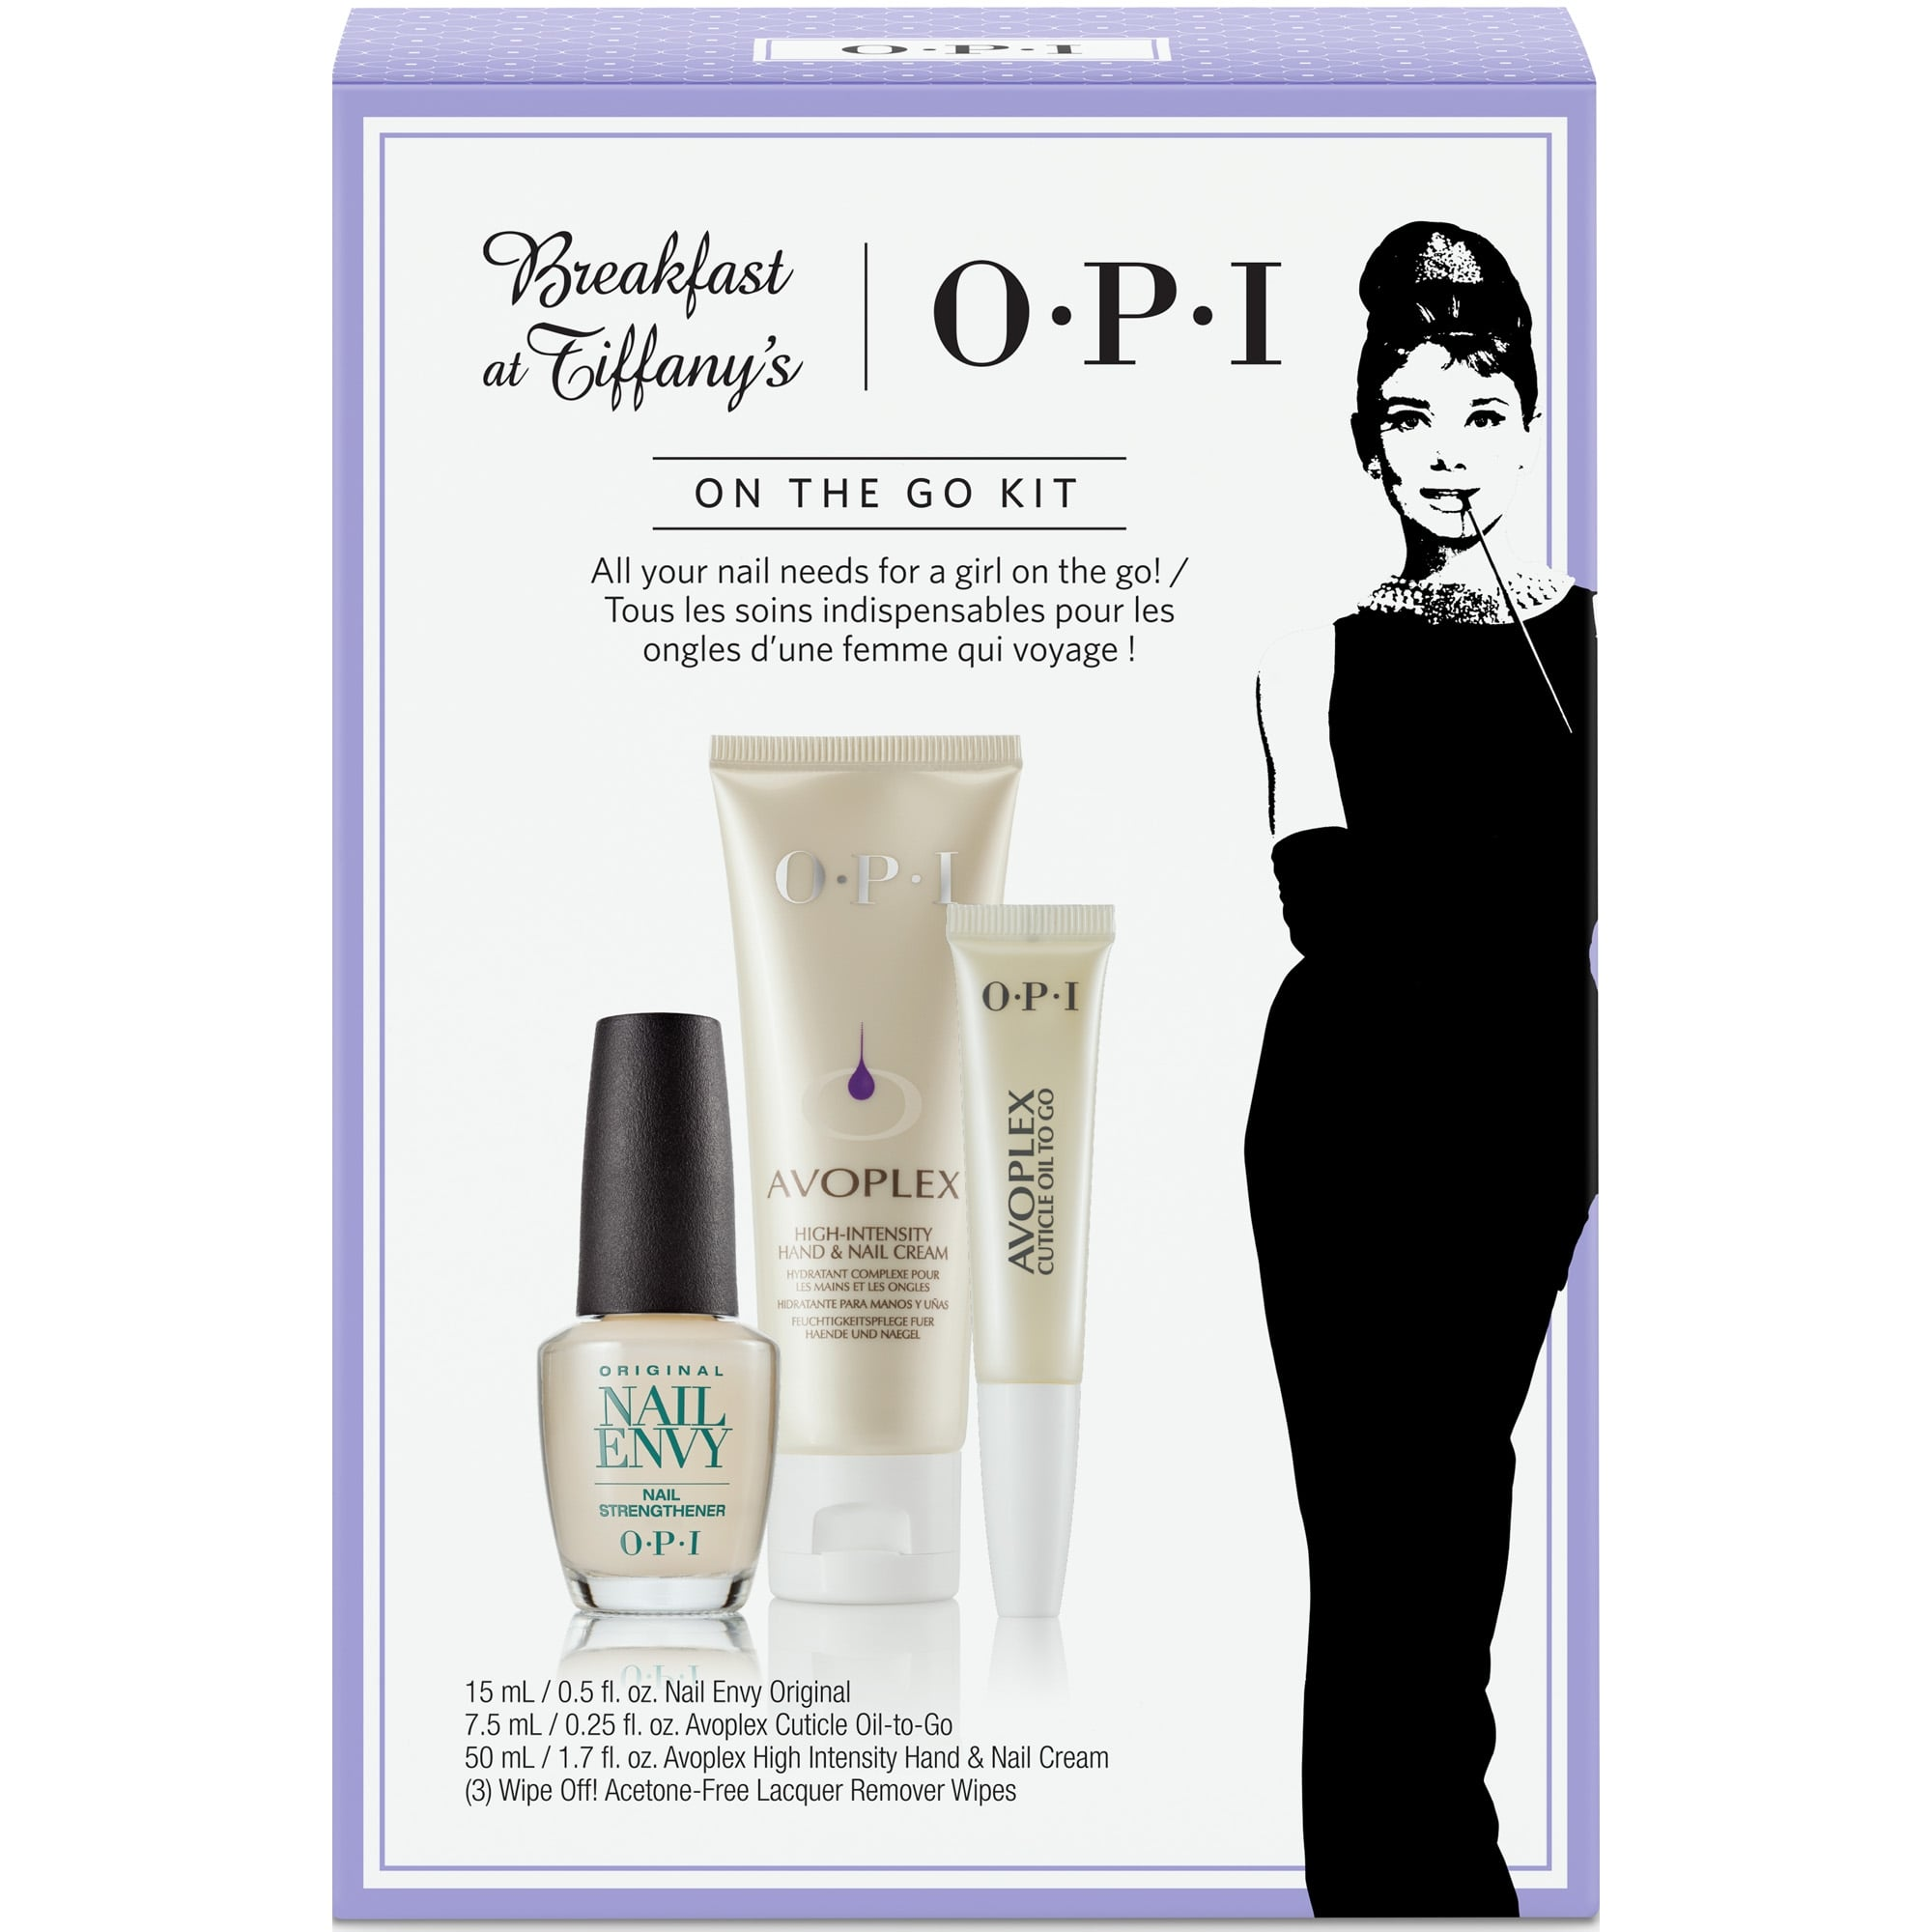 OPI Breakfast At Tiffany's - ON THE GO KIT 3pc